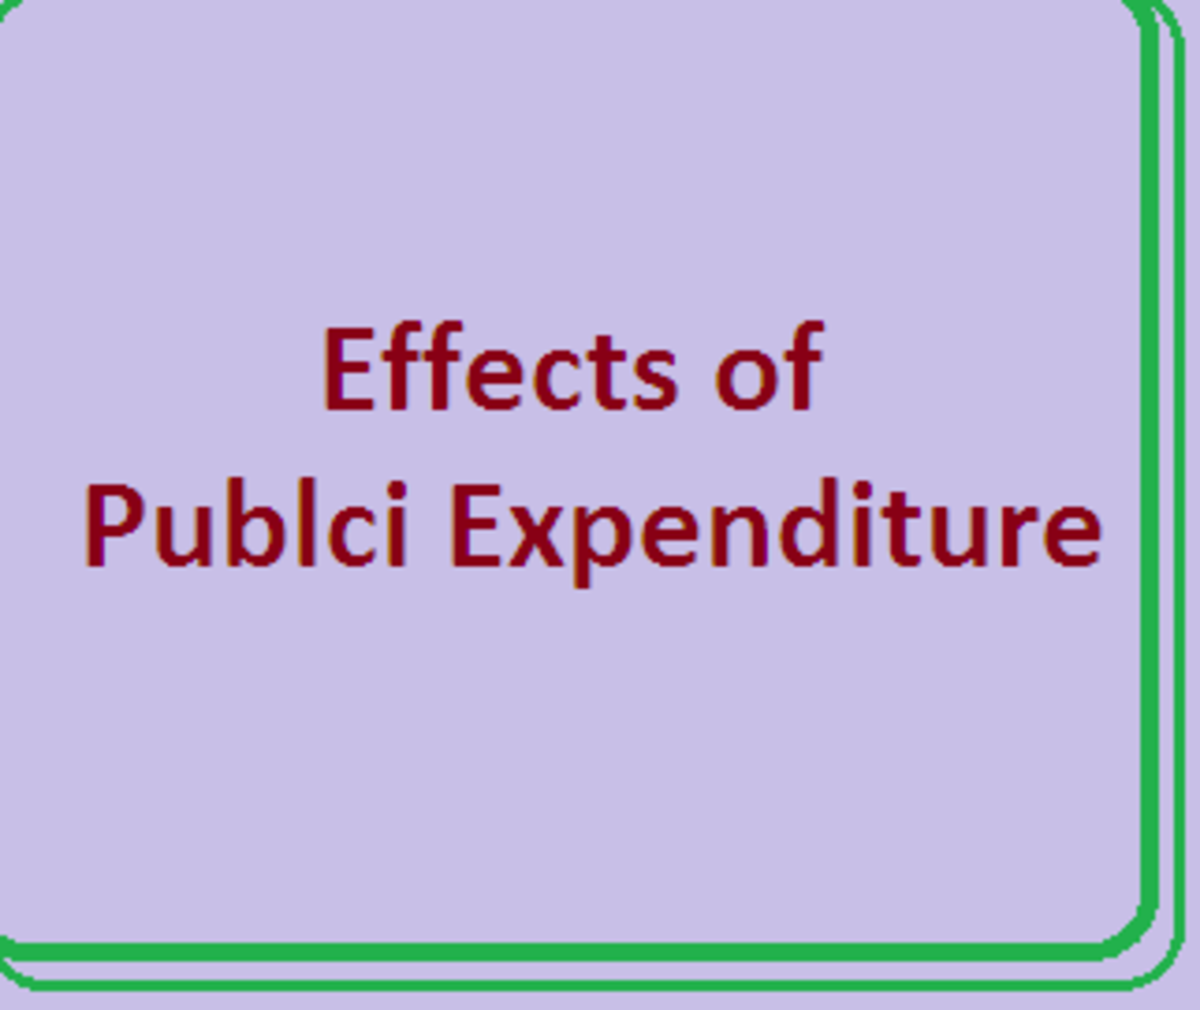 What are the Major Effects of Public Expenditure in an Economy